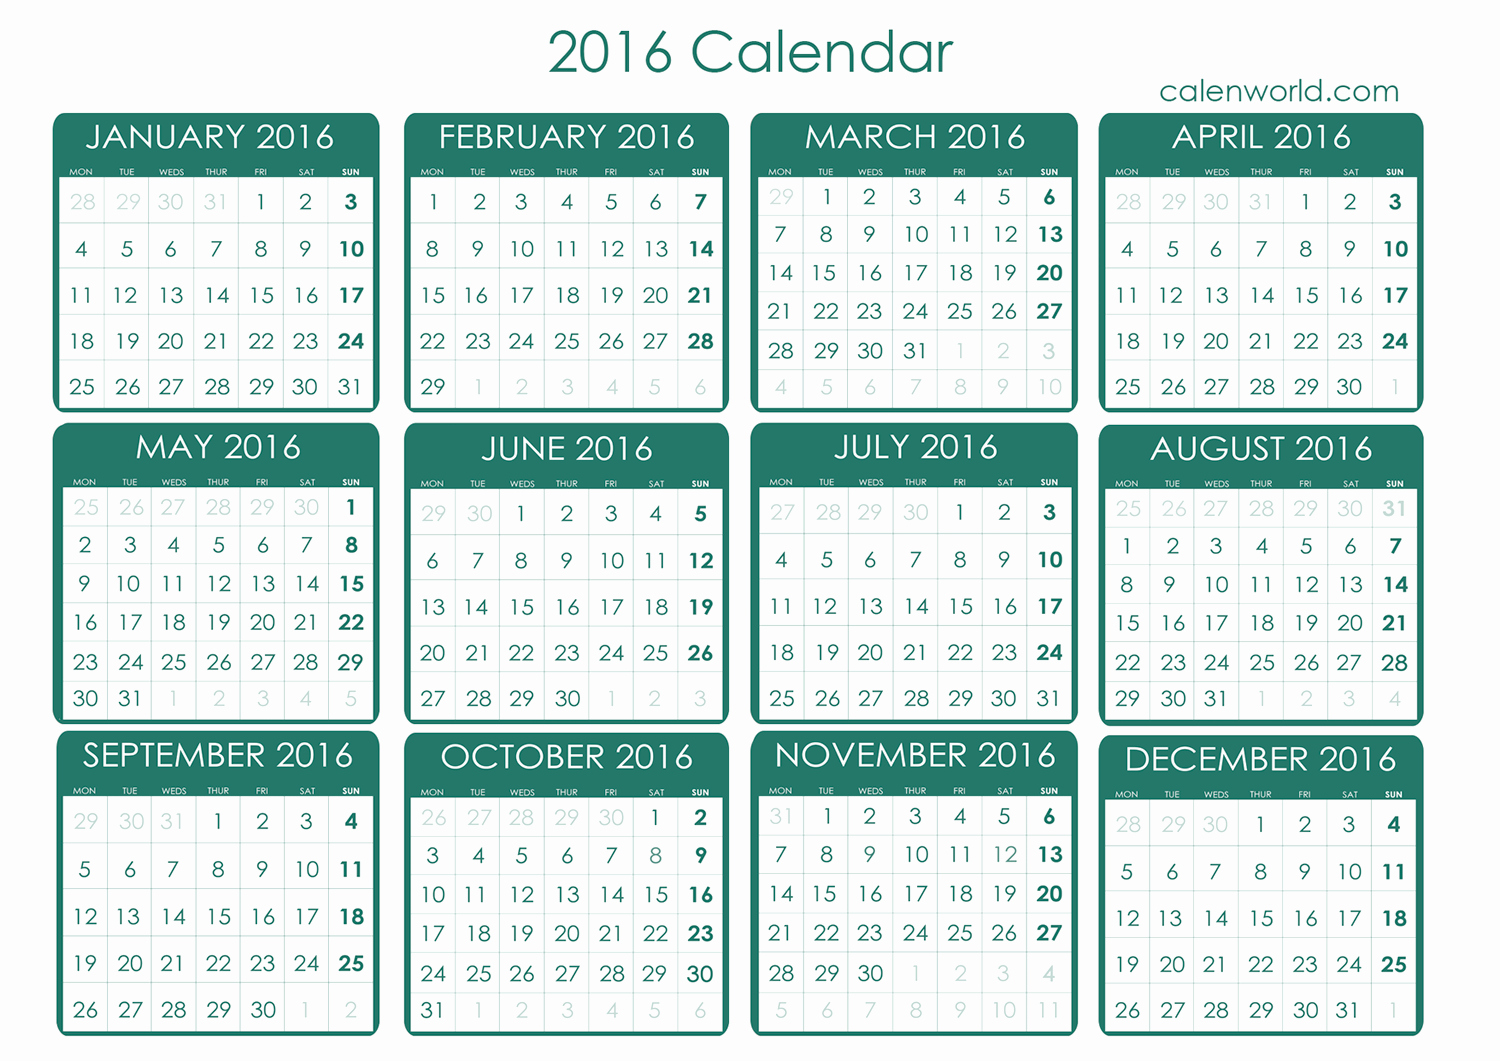 Free Downloadable 2016 Calendar Template Luxury 2016 Calendar 2016 Free Printable Calendar